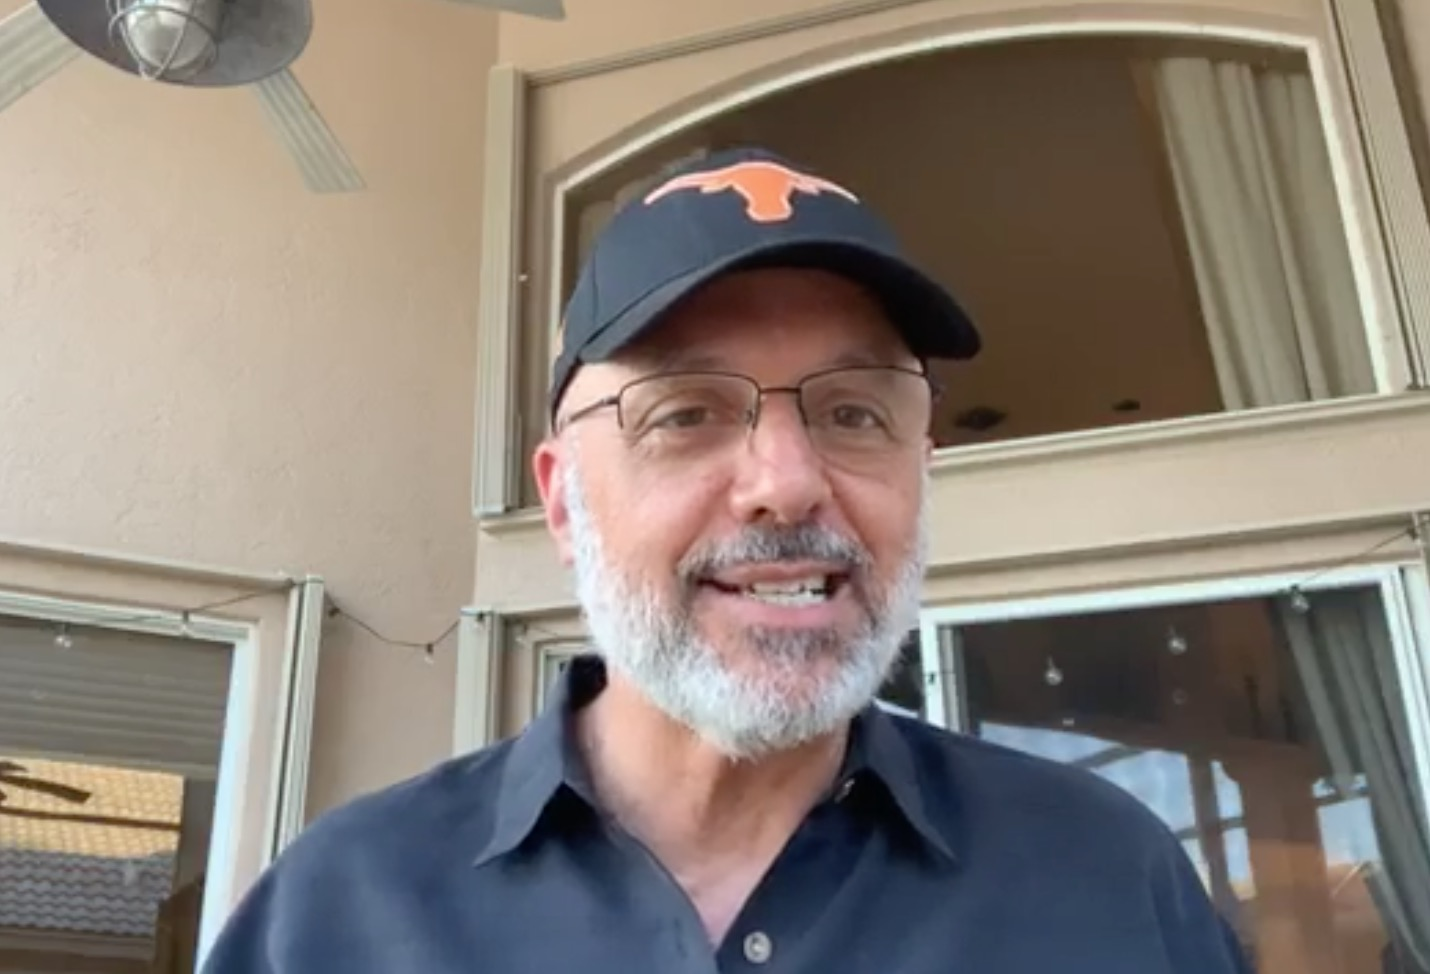 Ted Deutch pushes Coronavirus awareness and grows his beard